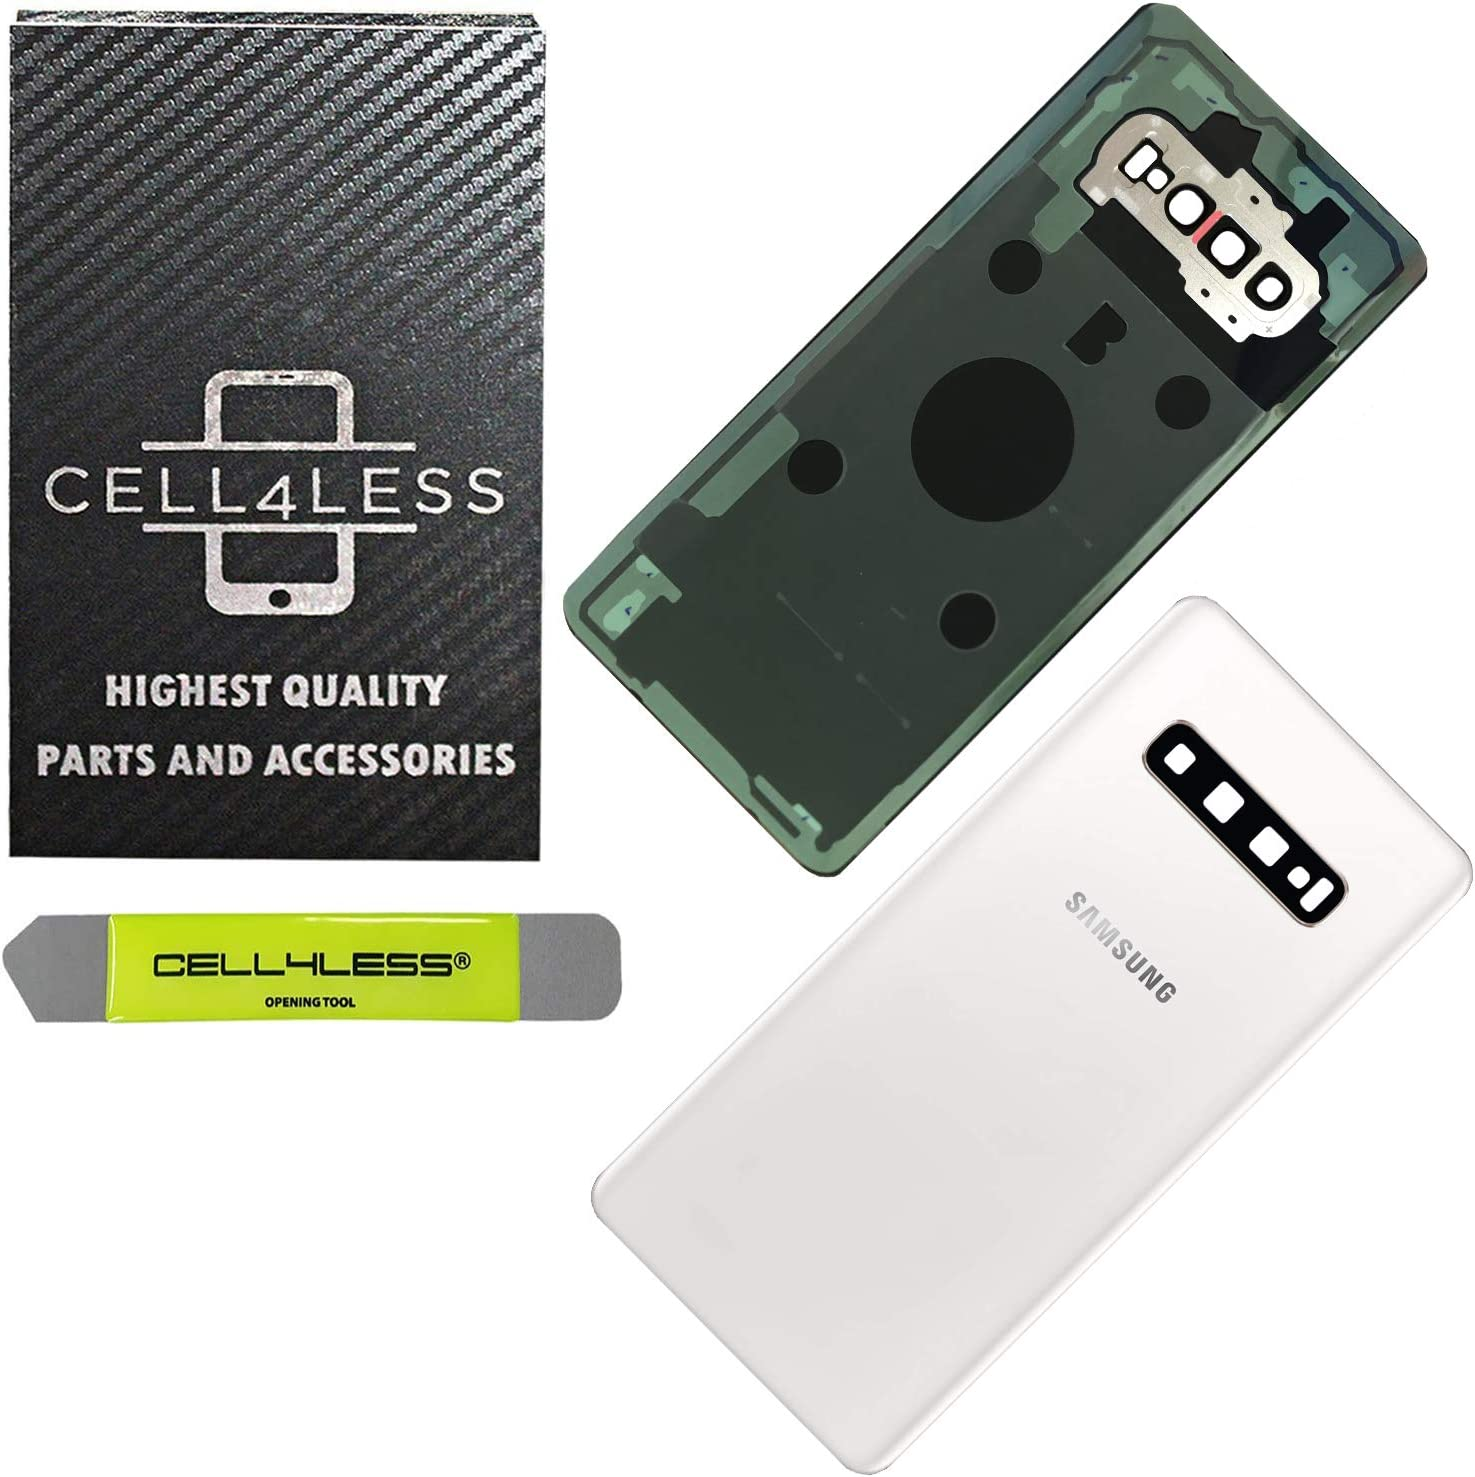 CELL4LESS Back Glass Replacement for The Galaxy S10+ Plus Model SM-G975 Including Camera Frame, Lens, Removal Tool (Ceramic White)